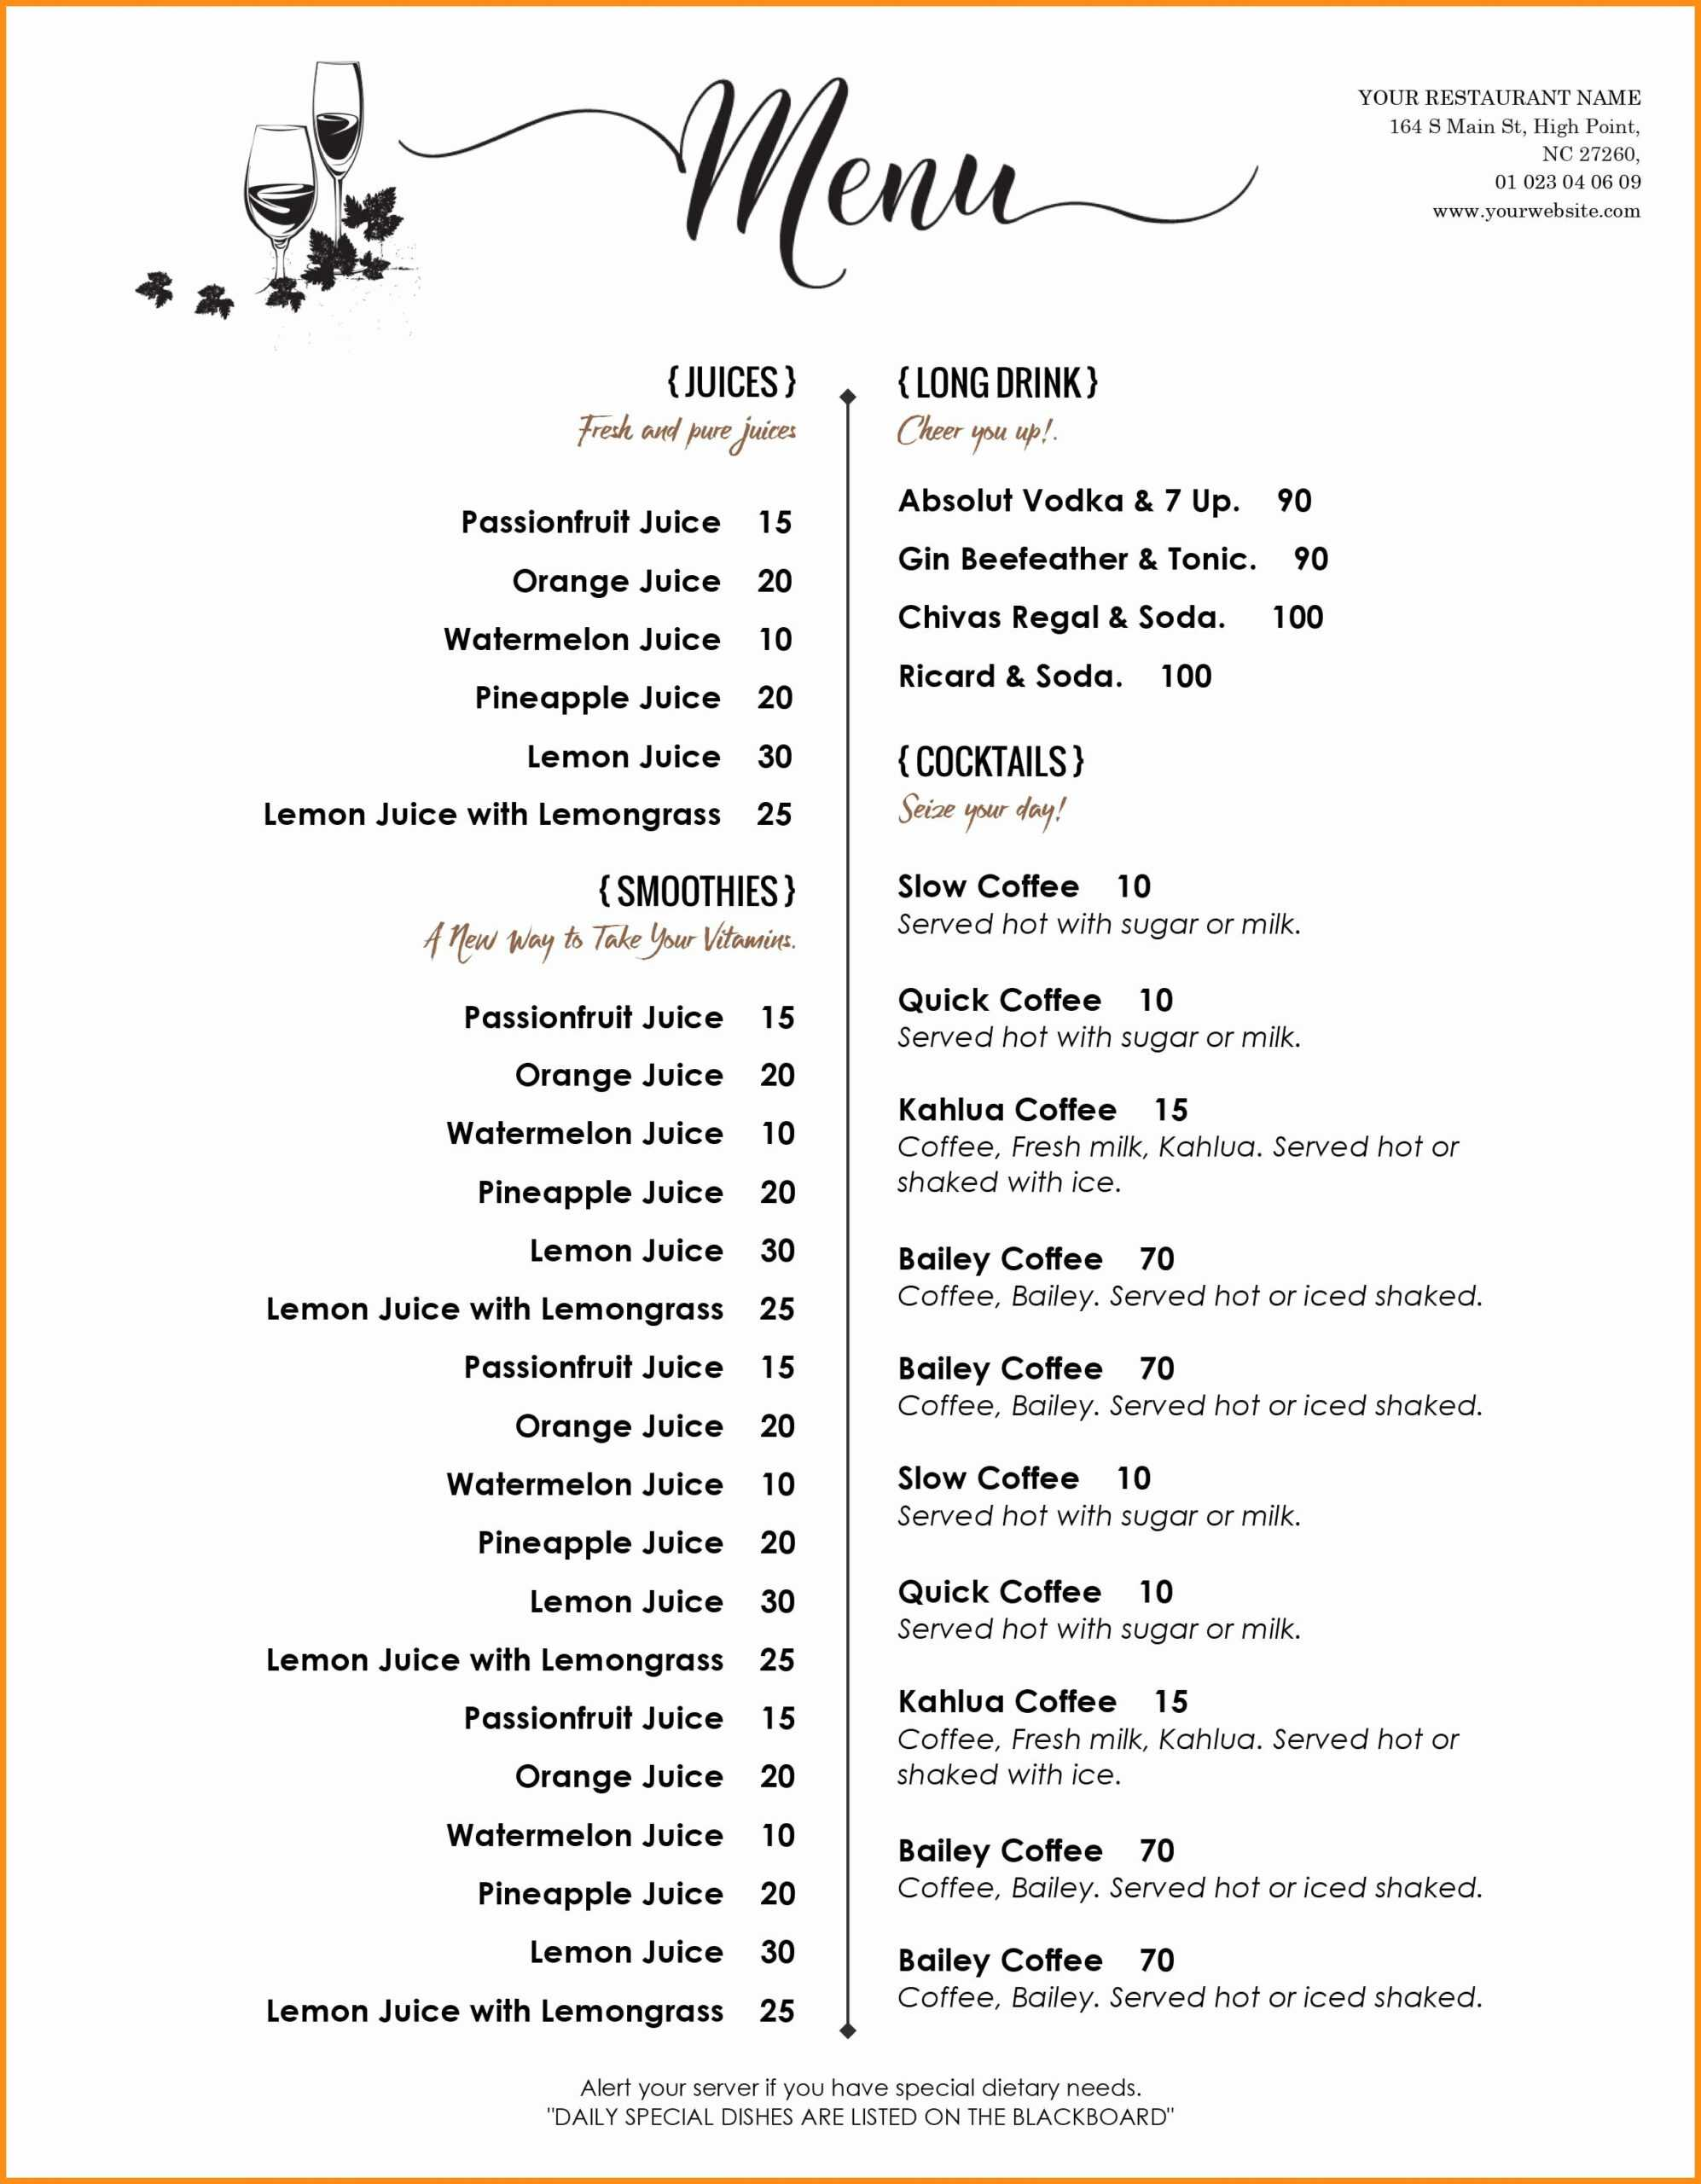 003 Microsoft Word Menu Template Ideas Free Menus Templates Intended For Free Cafe Menu Templates For Word